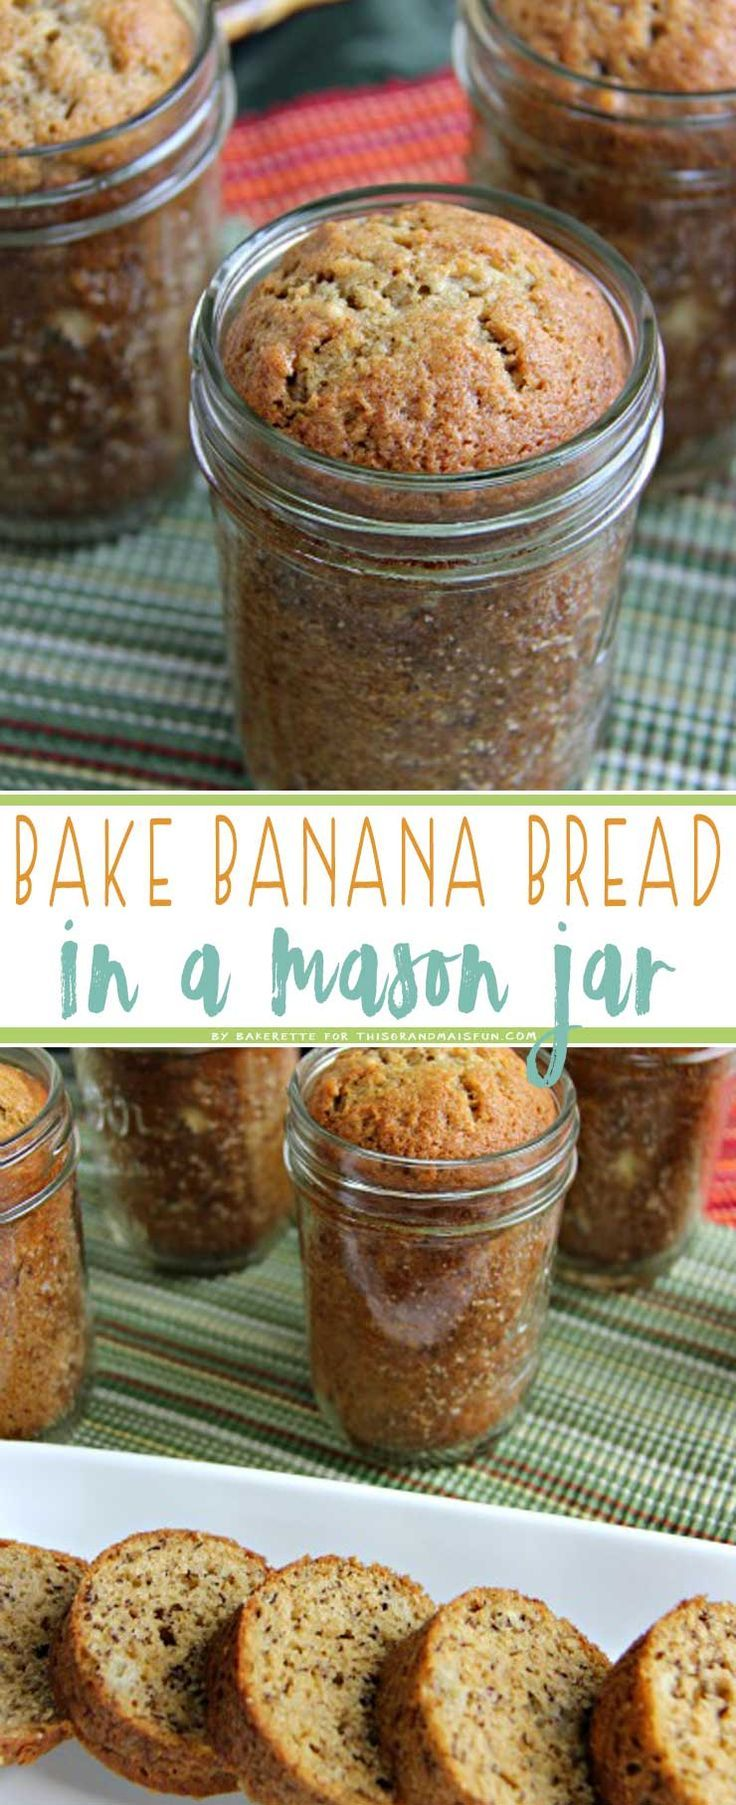 This traditional banana bread features an ingenious twist: It is baked in a canning jar! Such a fun and unique presentation makes it perfect for gifts.